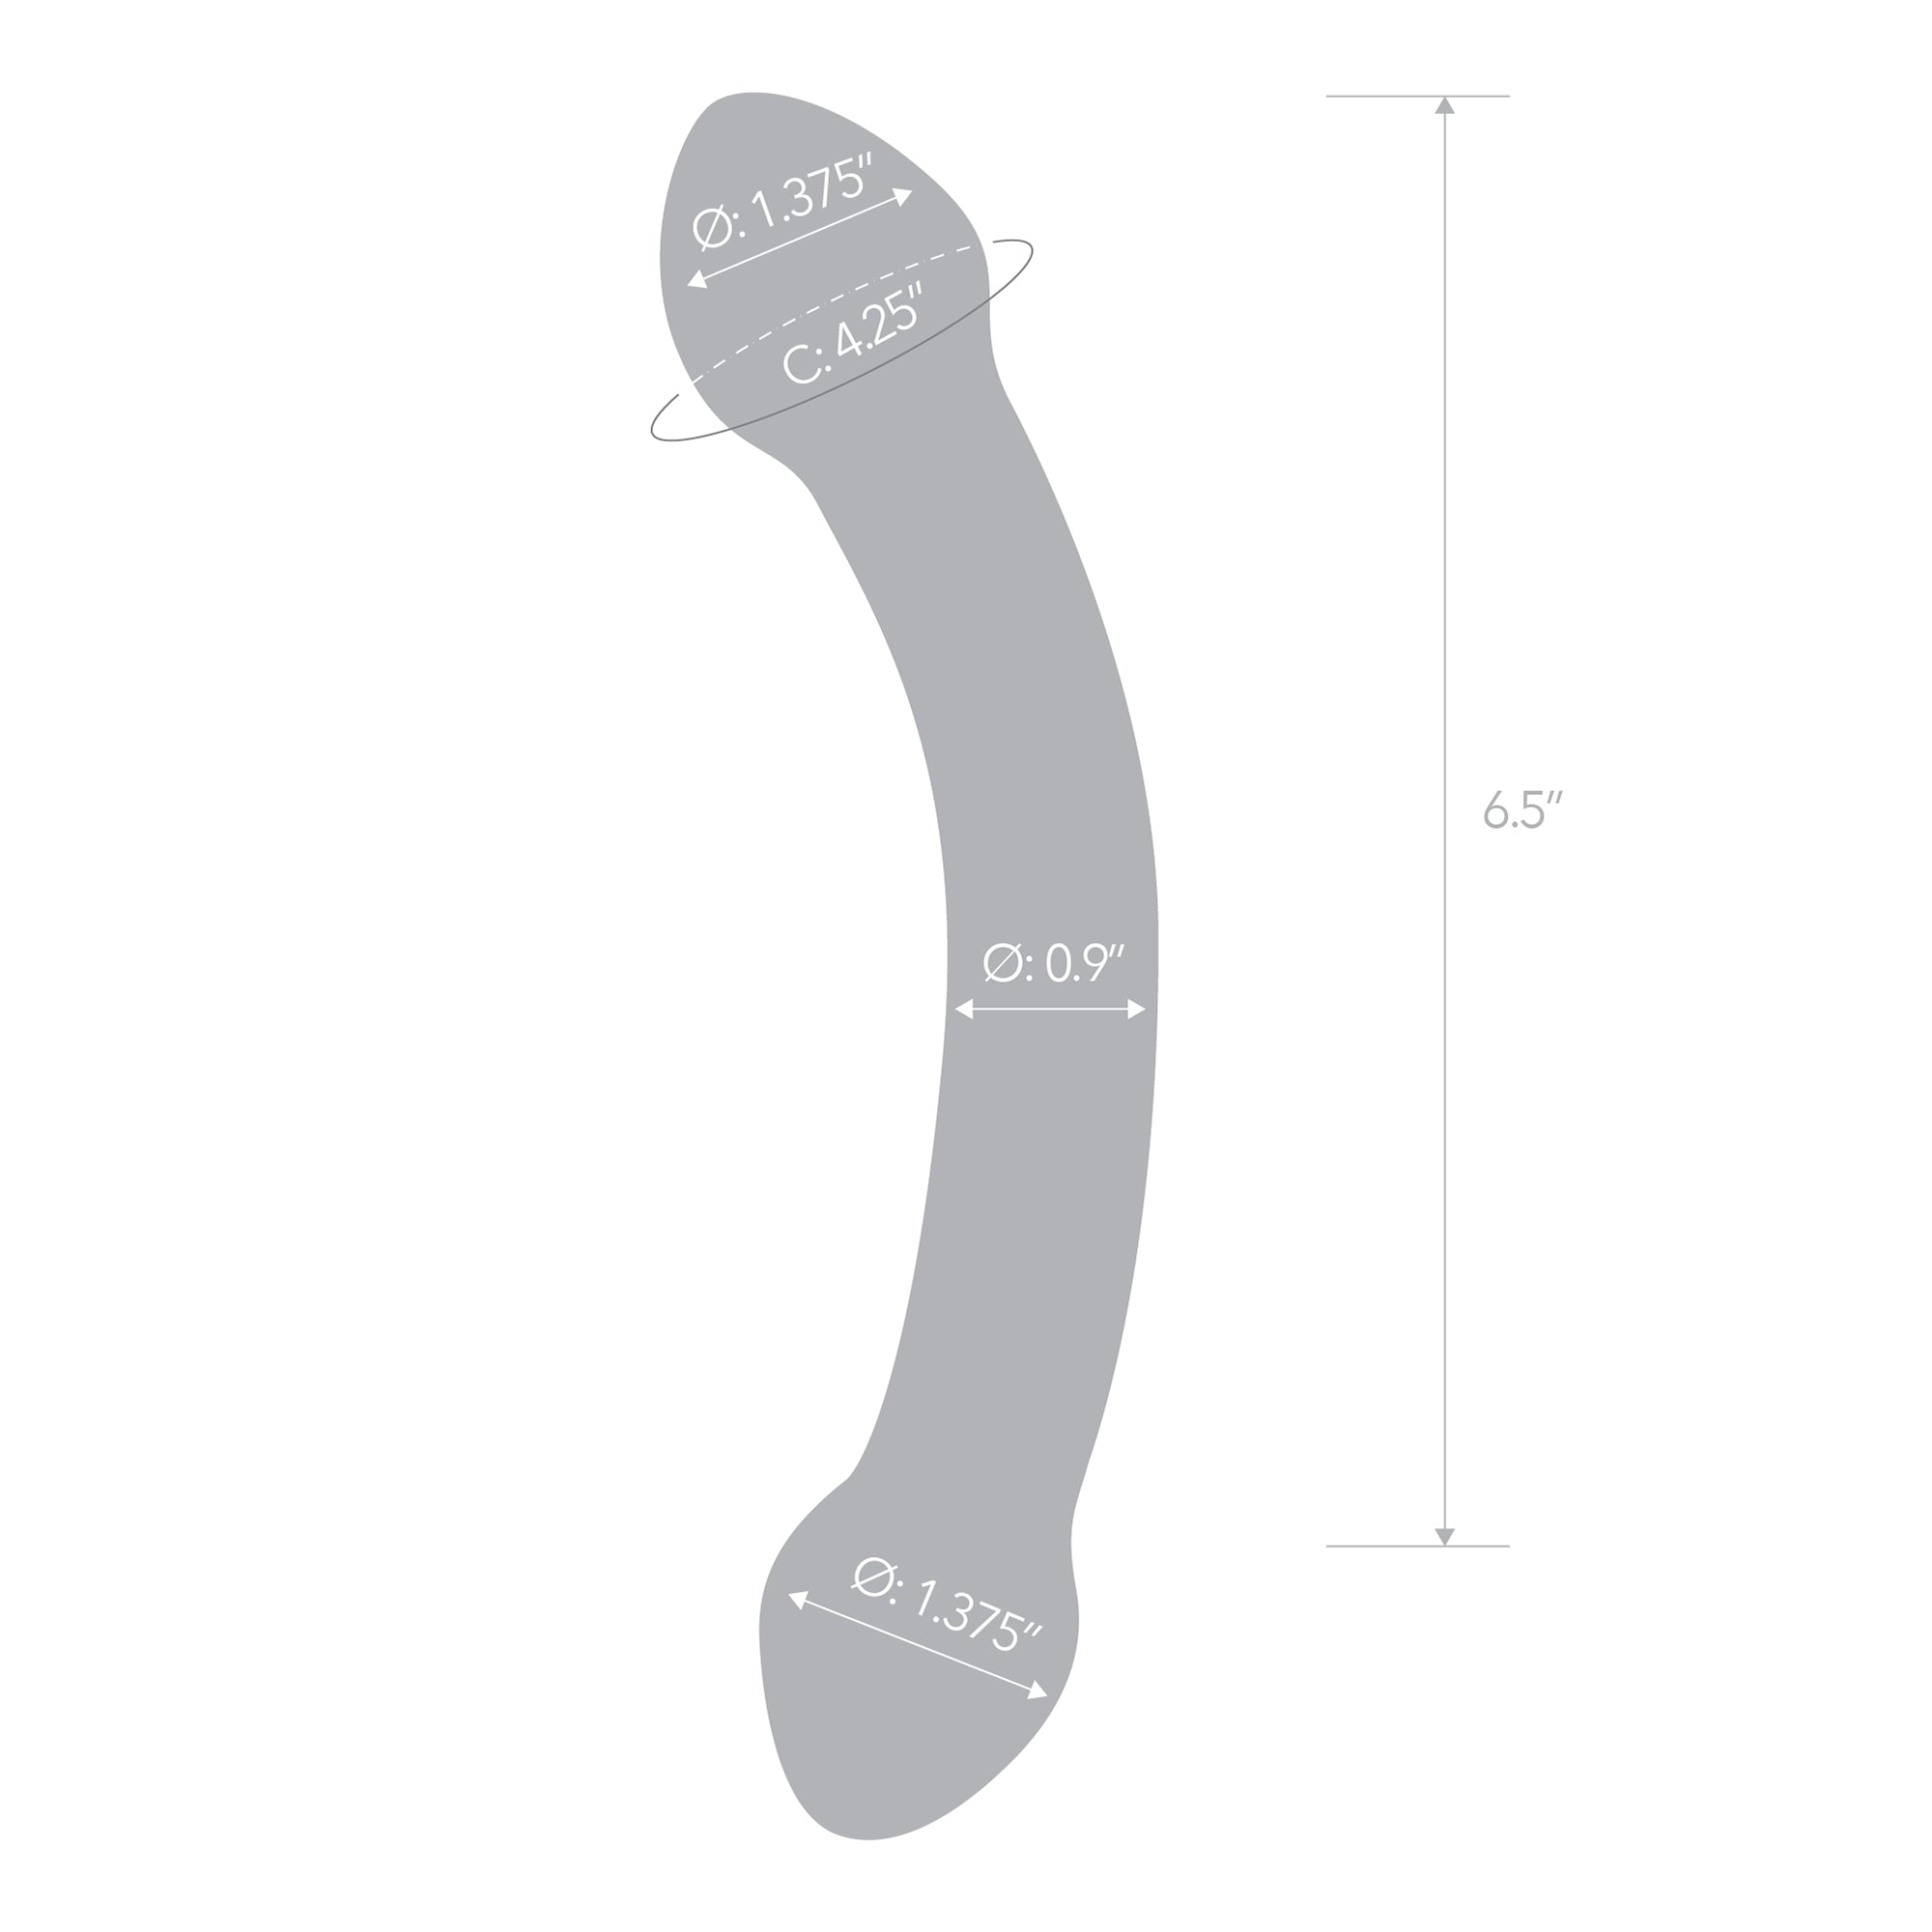 Specifications of the Gläs Double Trouble Purple Glass Dildo